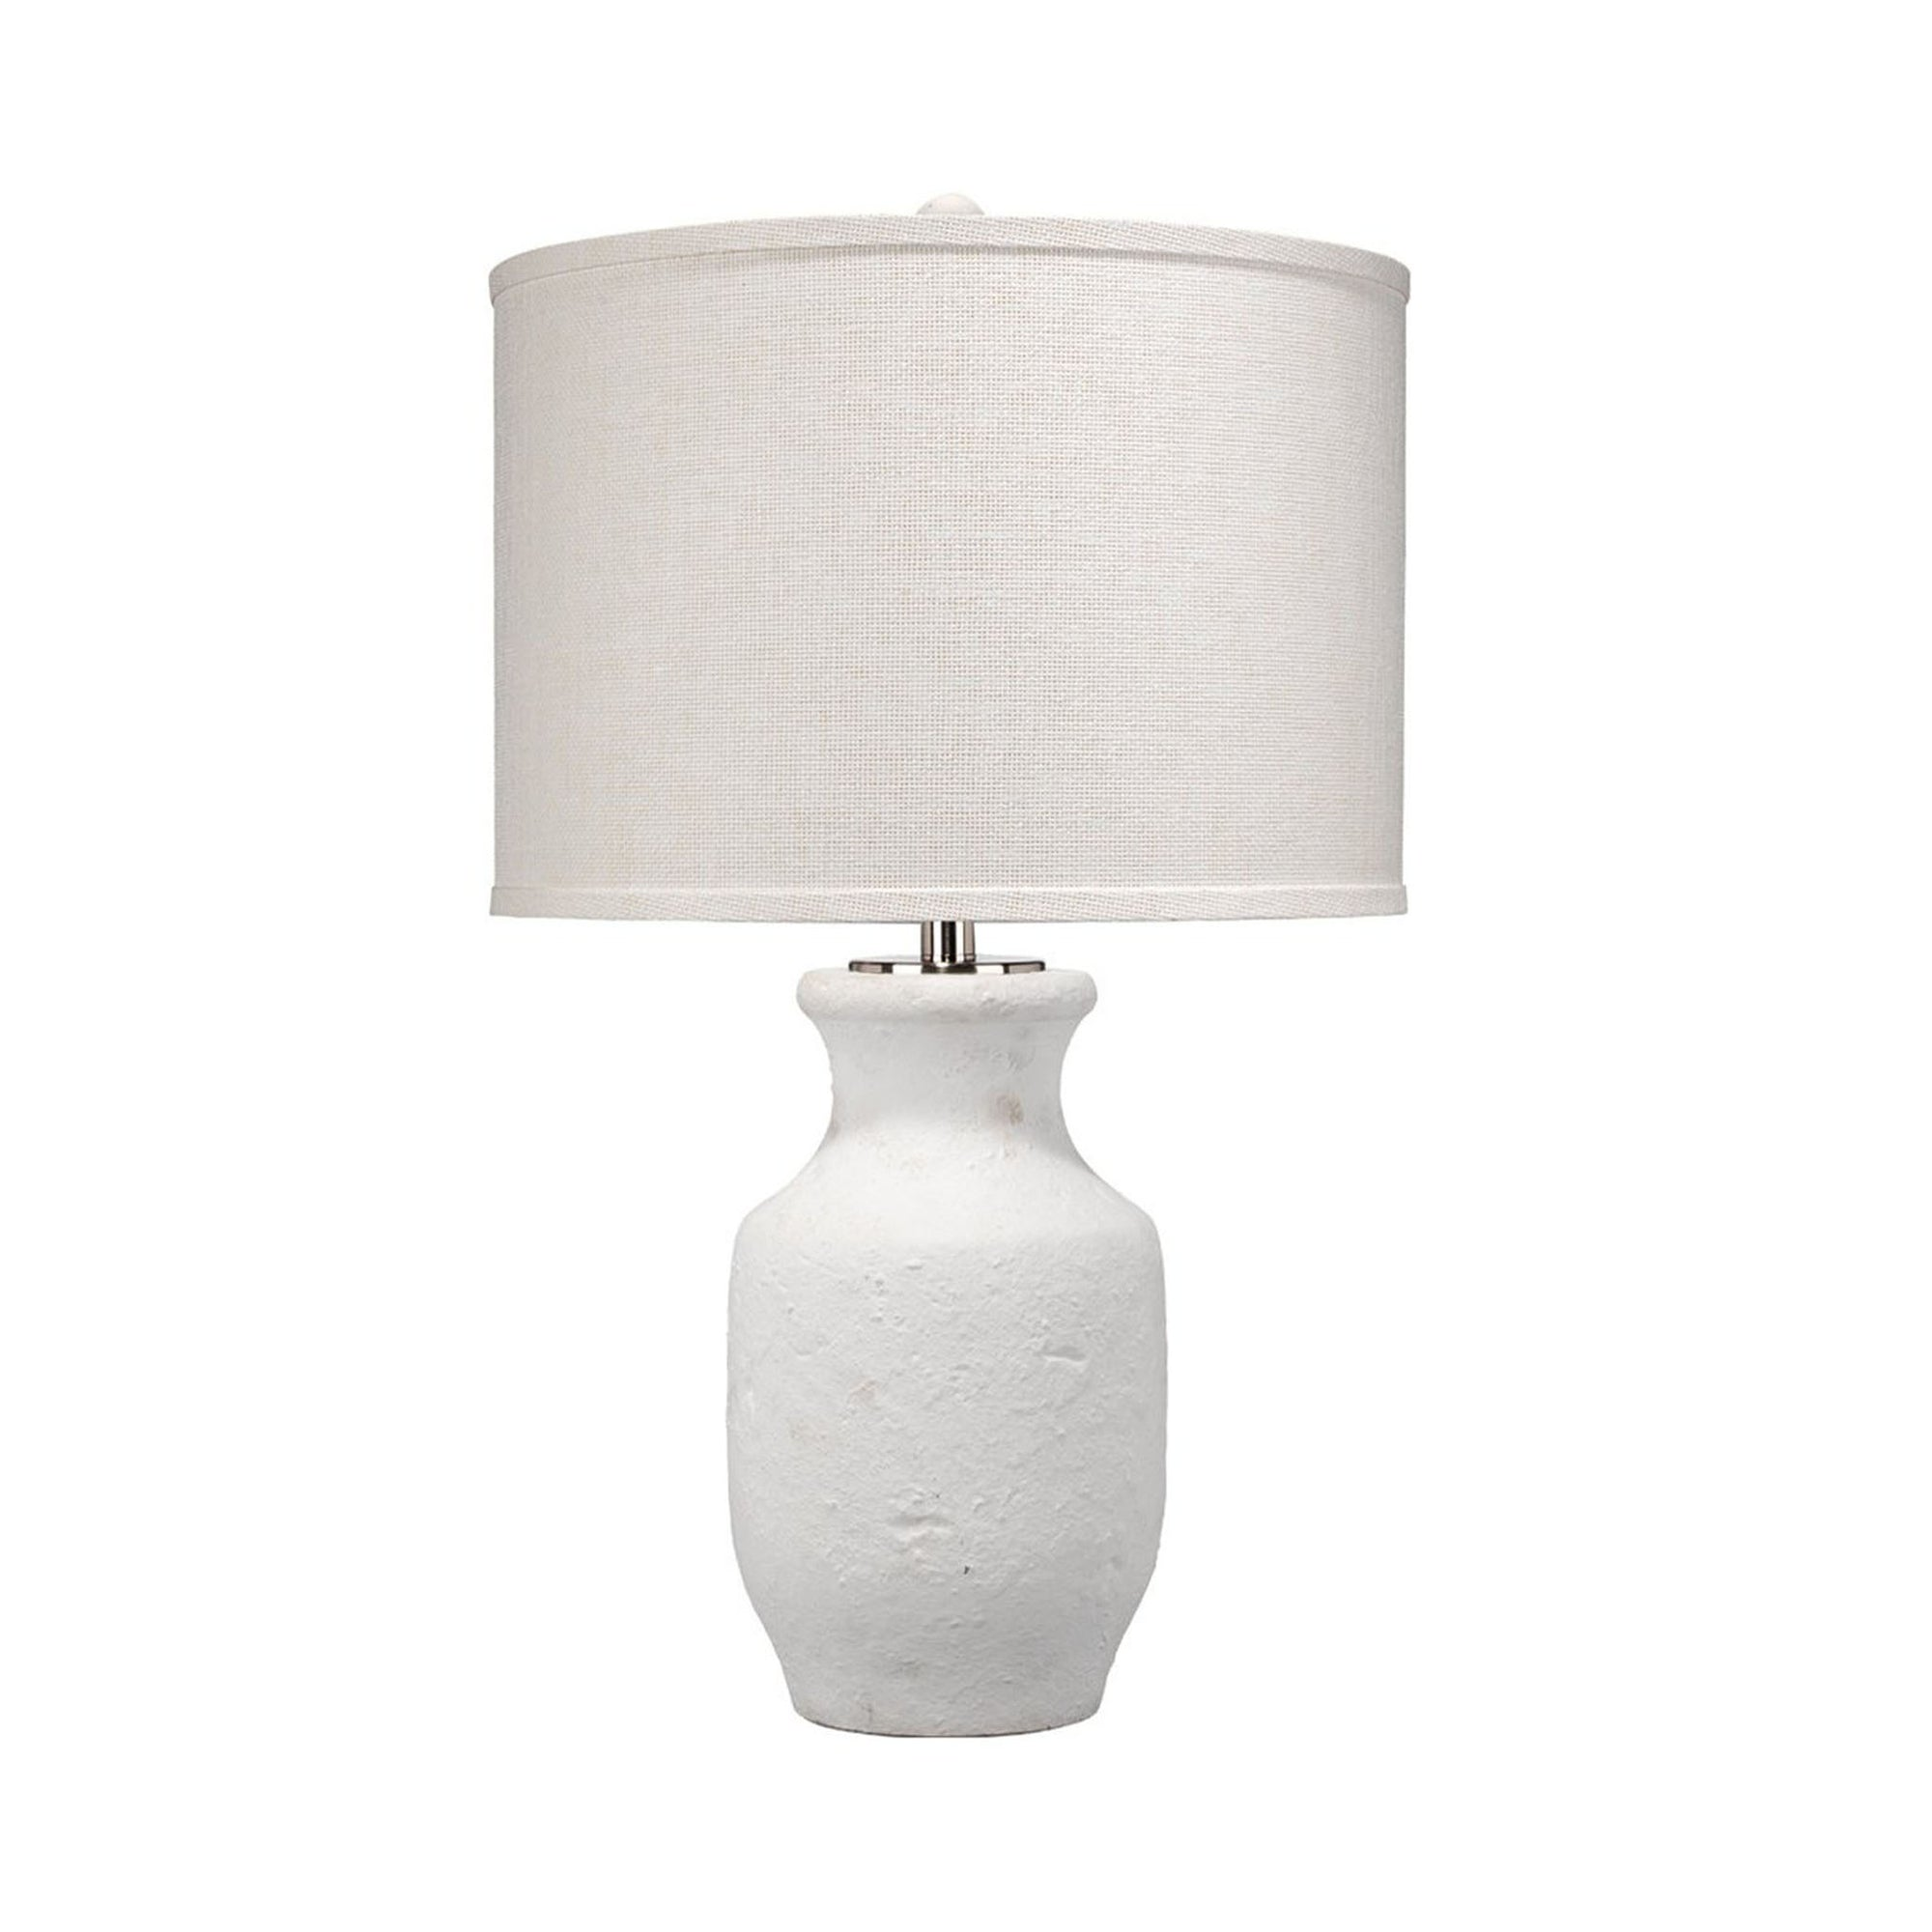 Gilbert Table Lamp